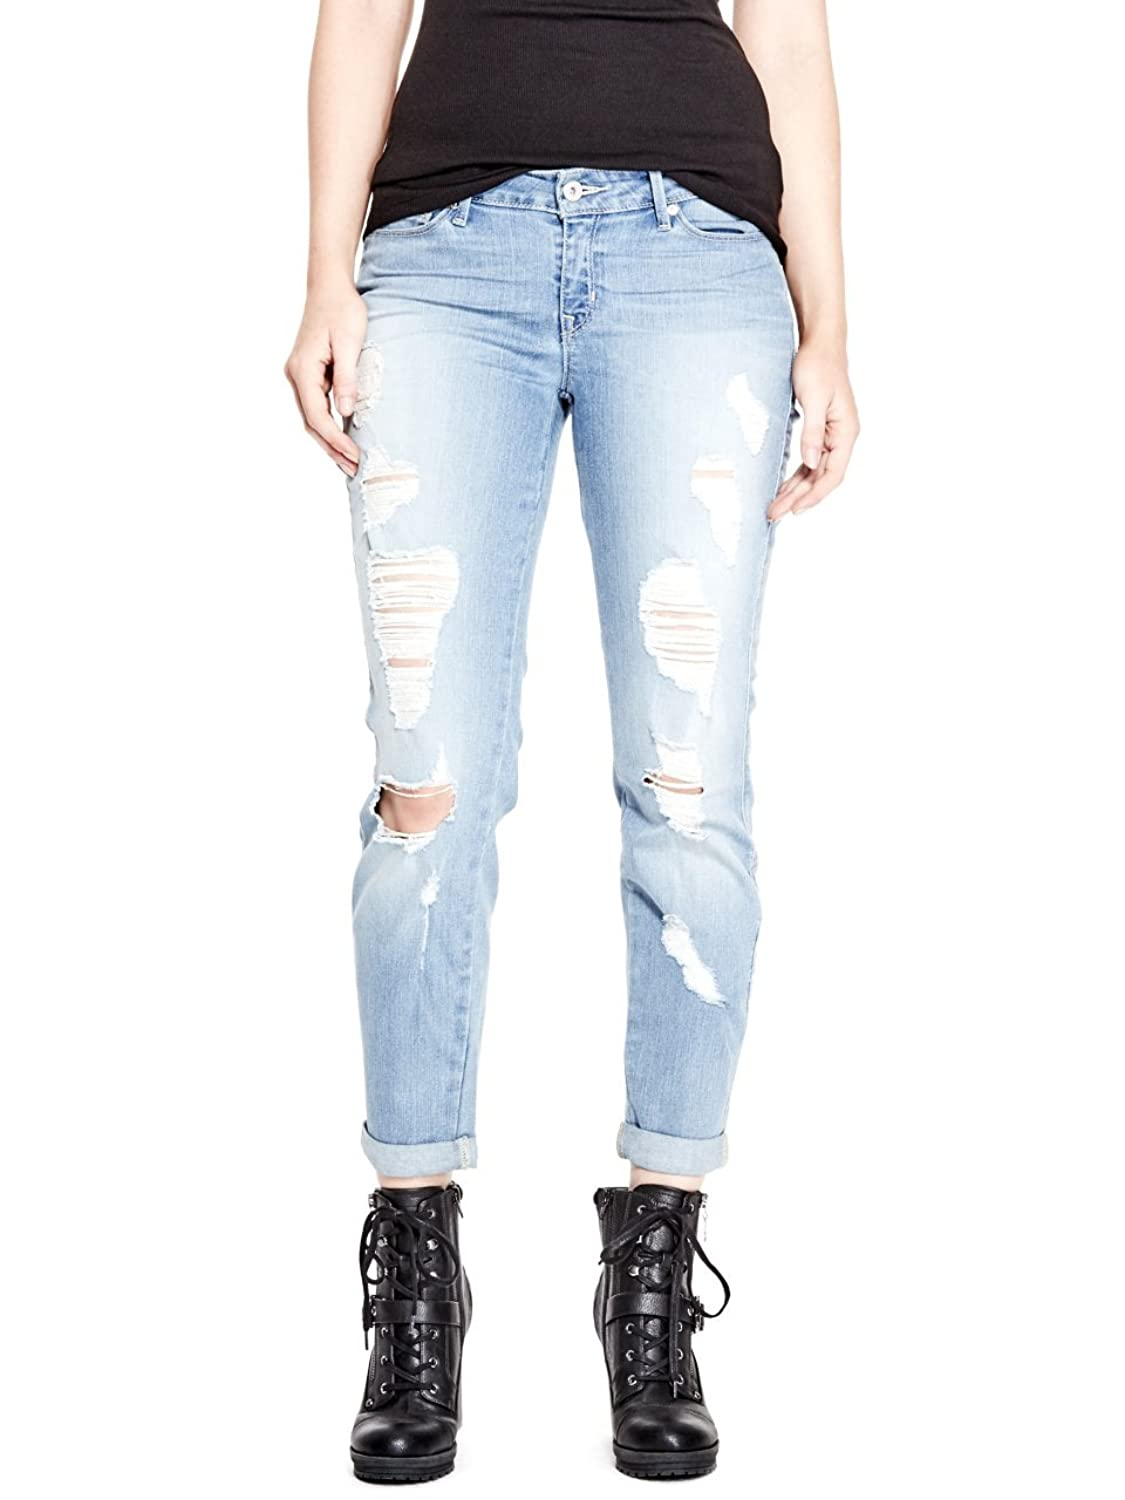 G by GUESS Women's Lianna Destroyed Skinny Jeans